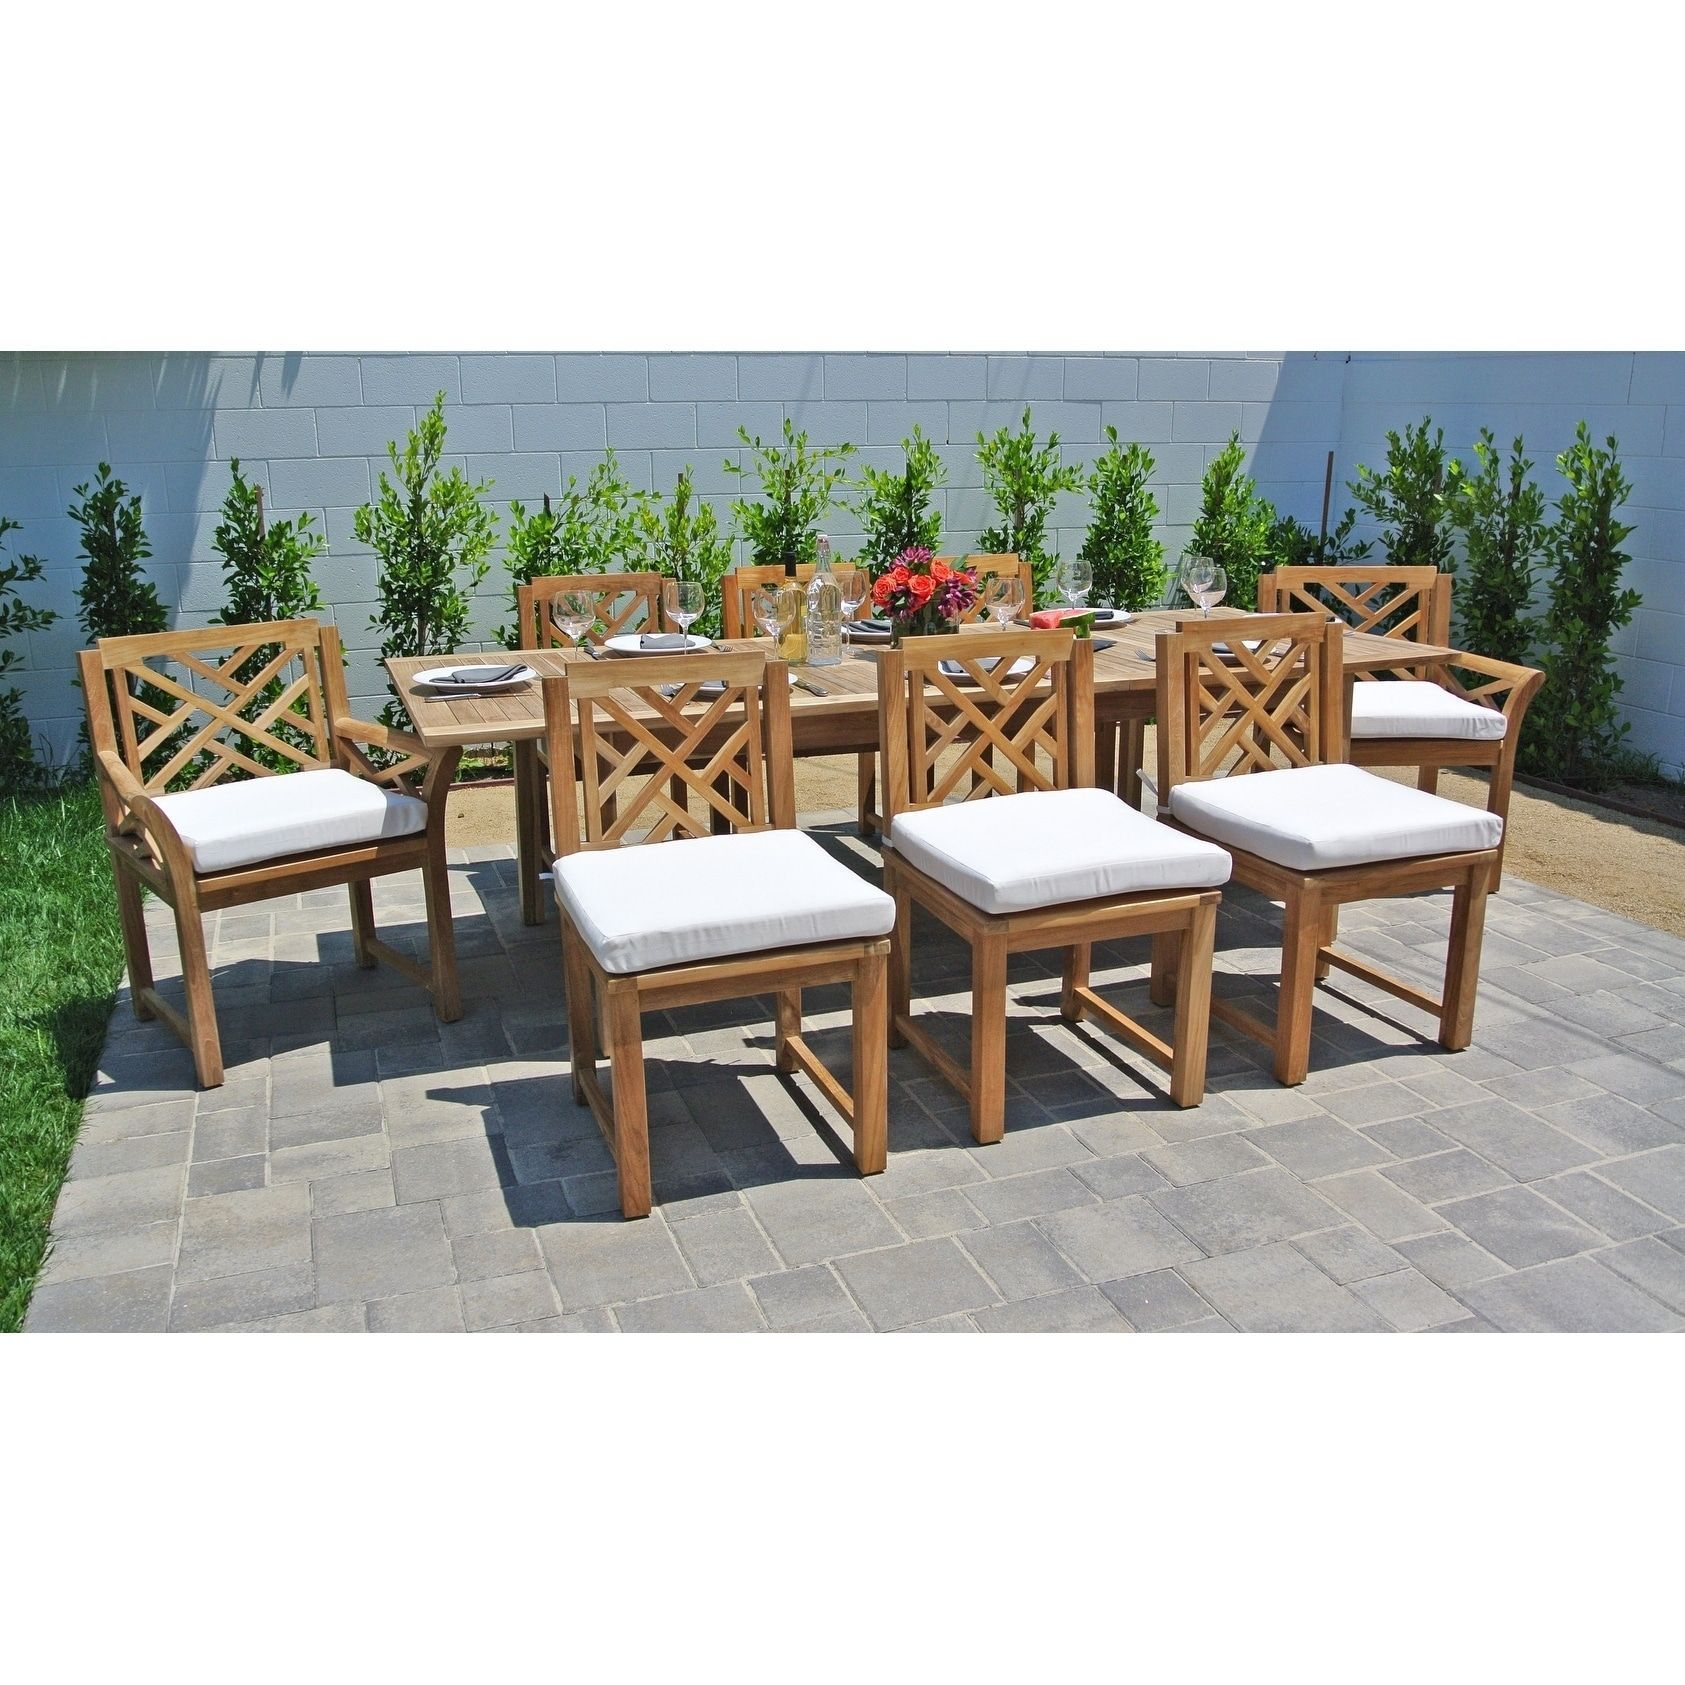 9 pc monterey teak outdoor patio furniture dining set with expansion